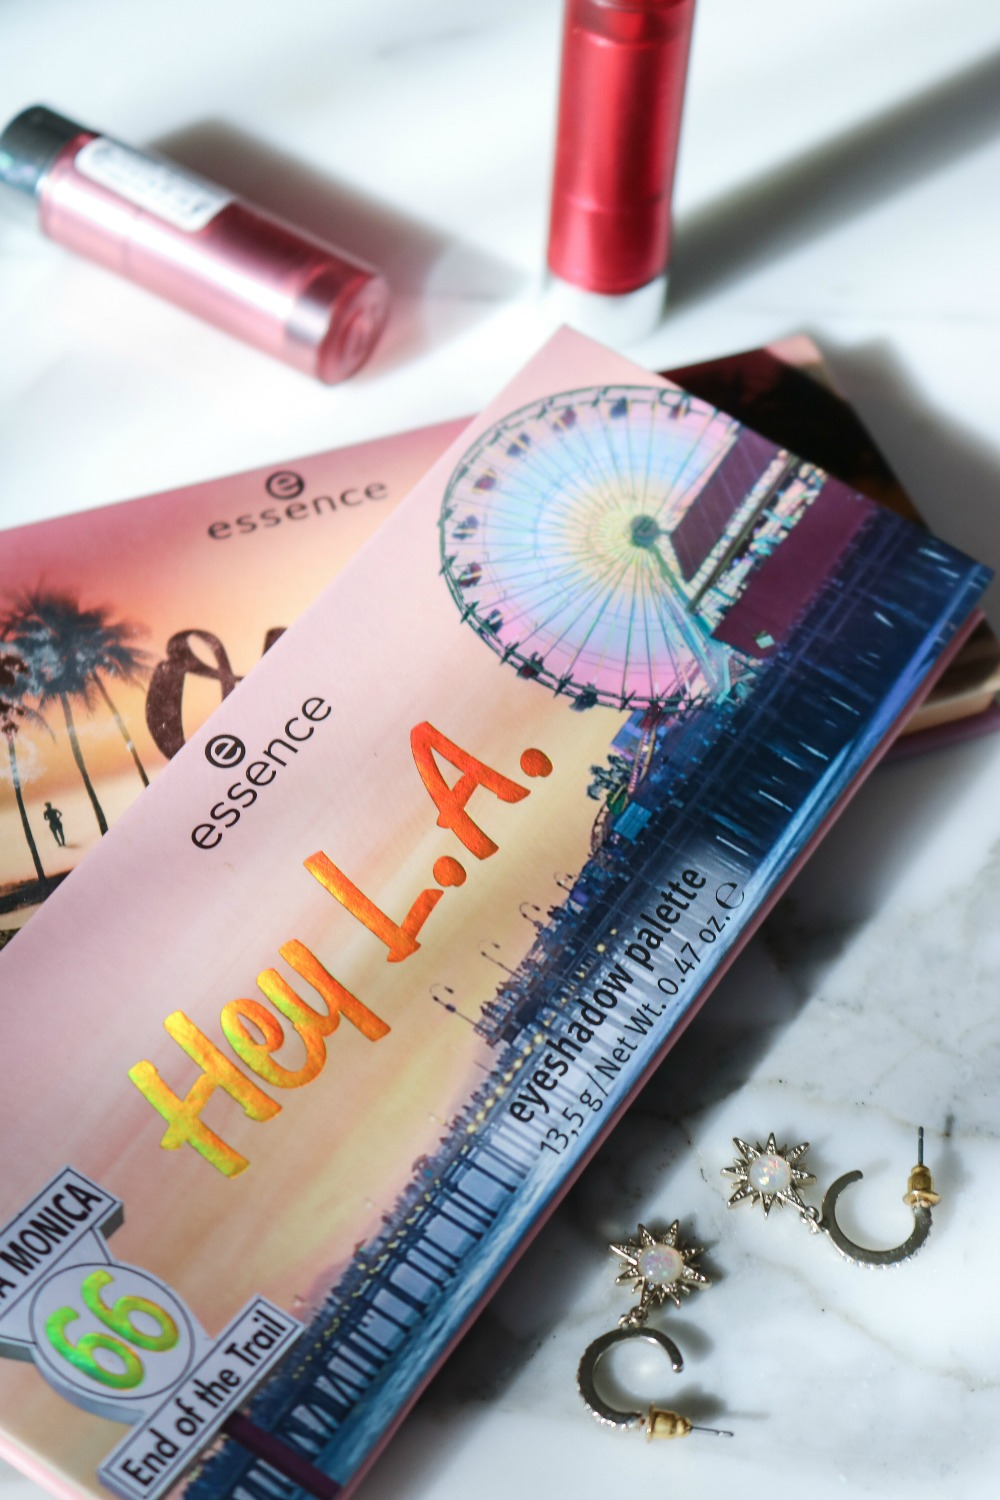 Essence Hey LA Eyeshadow Palette Review I DreaminLace.com